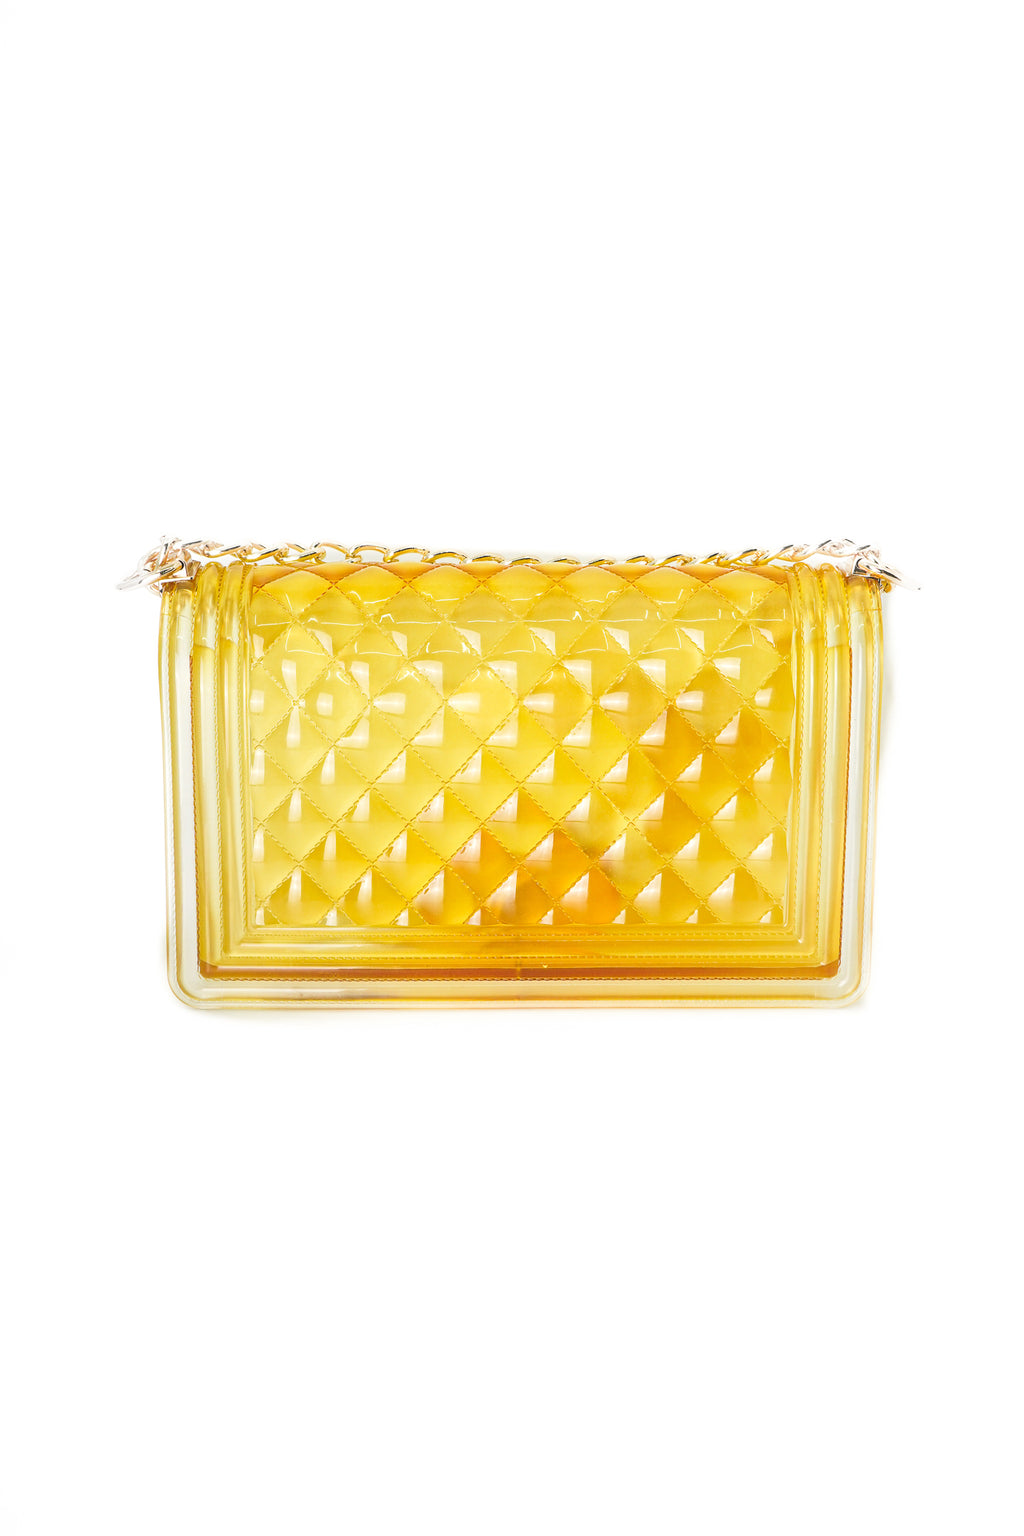 Yellow Clear Color Quilted Jelly Crossbody Shoulder Bag with Metal Chain Strap